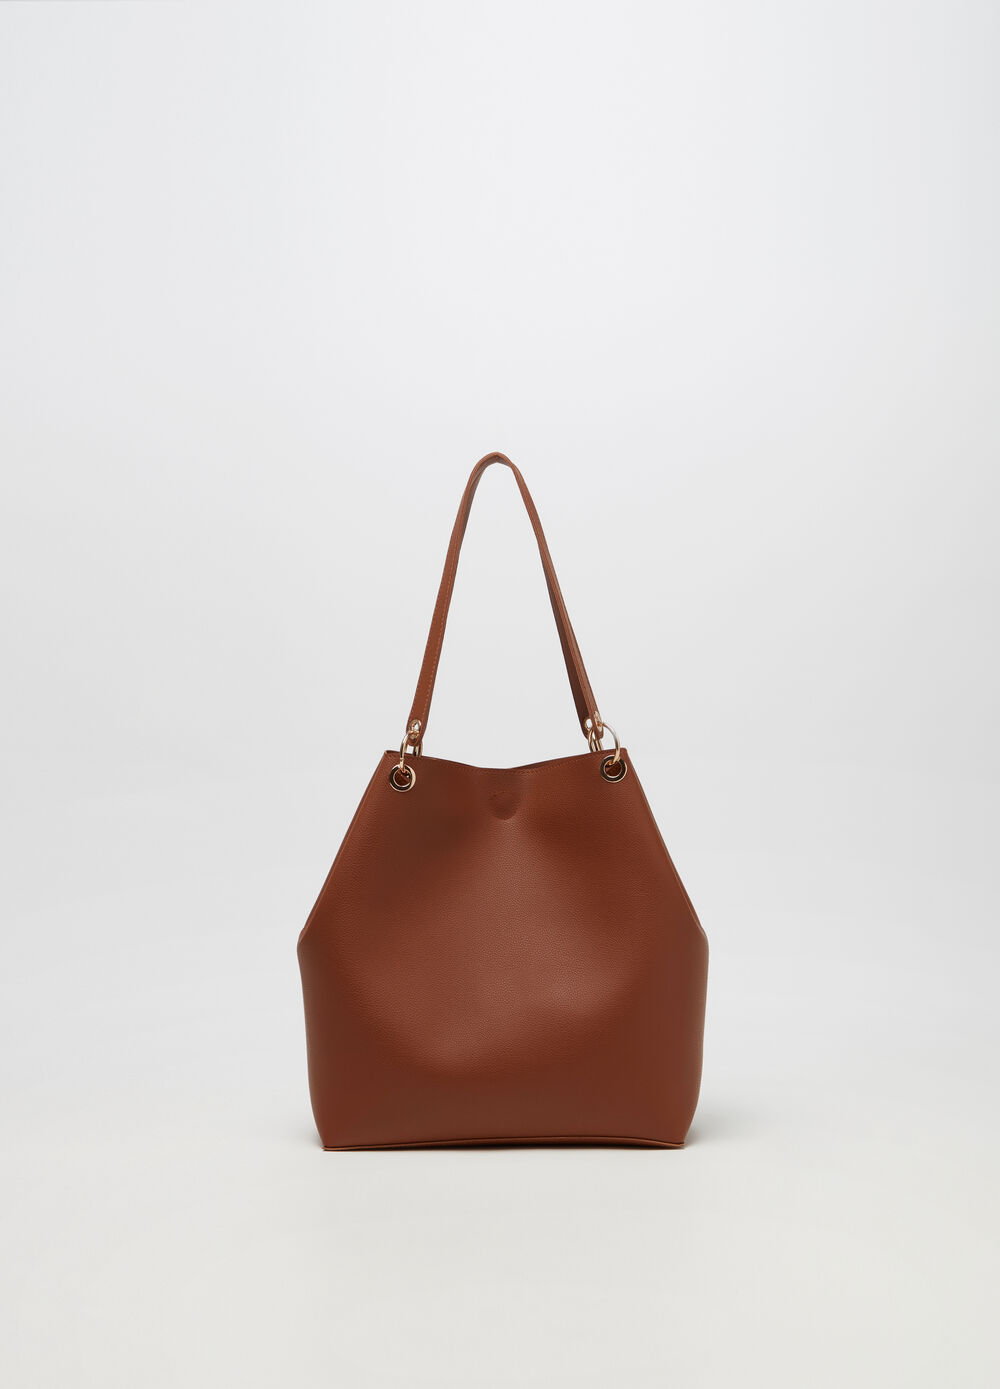 Leather-look tote bag with contrasting fastening